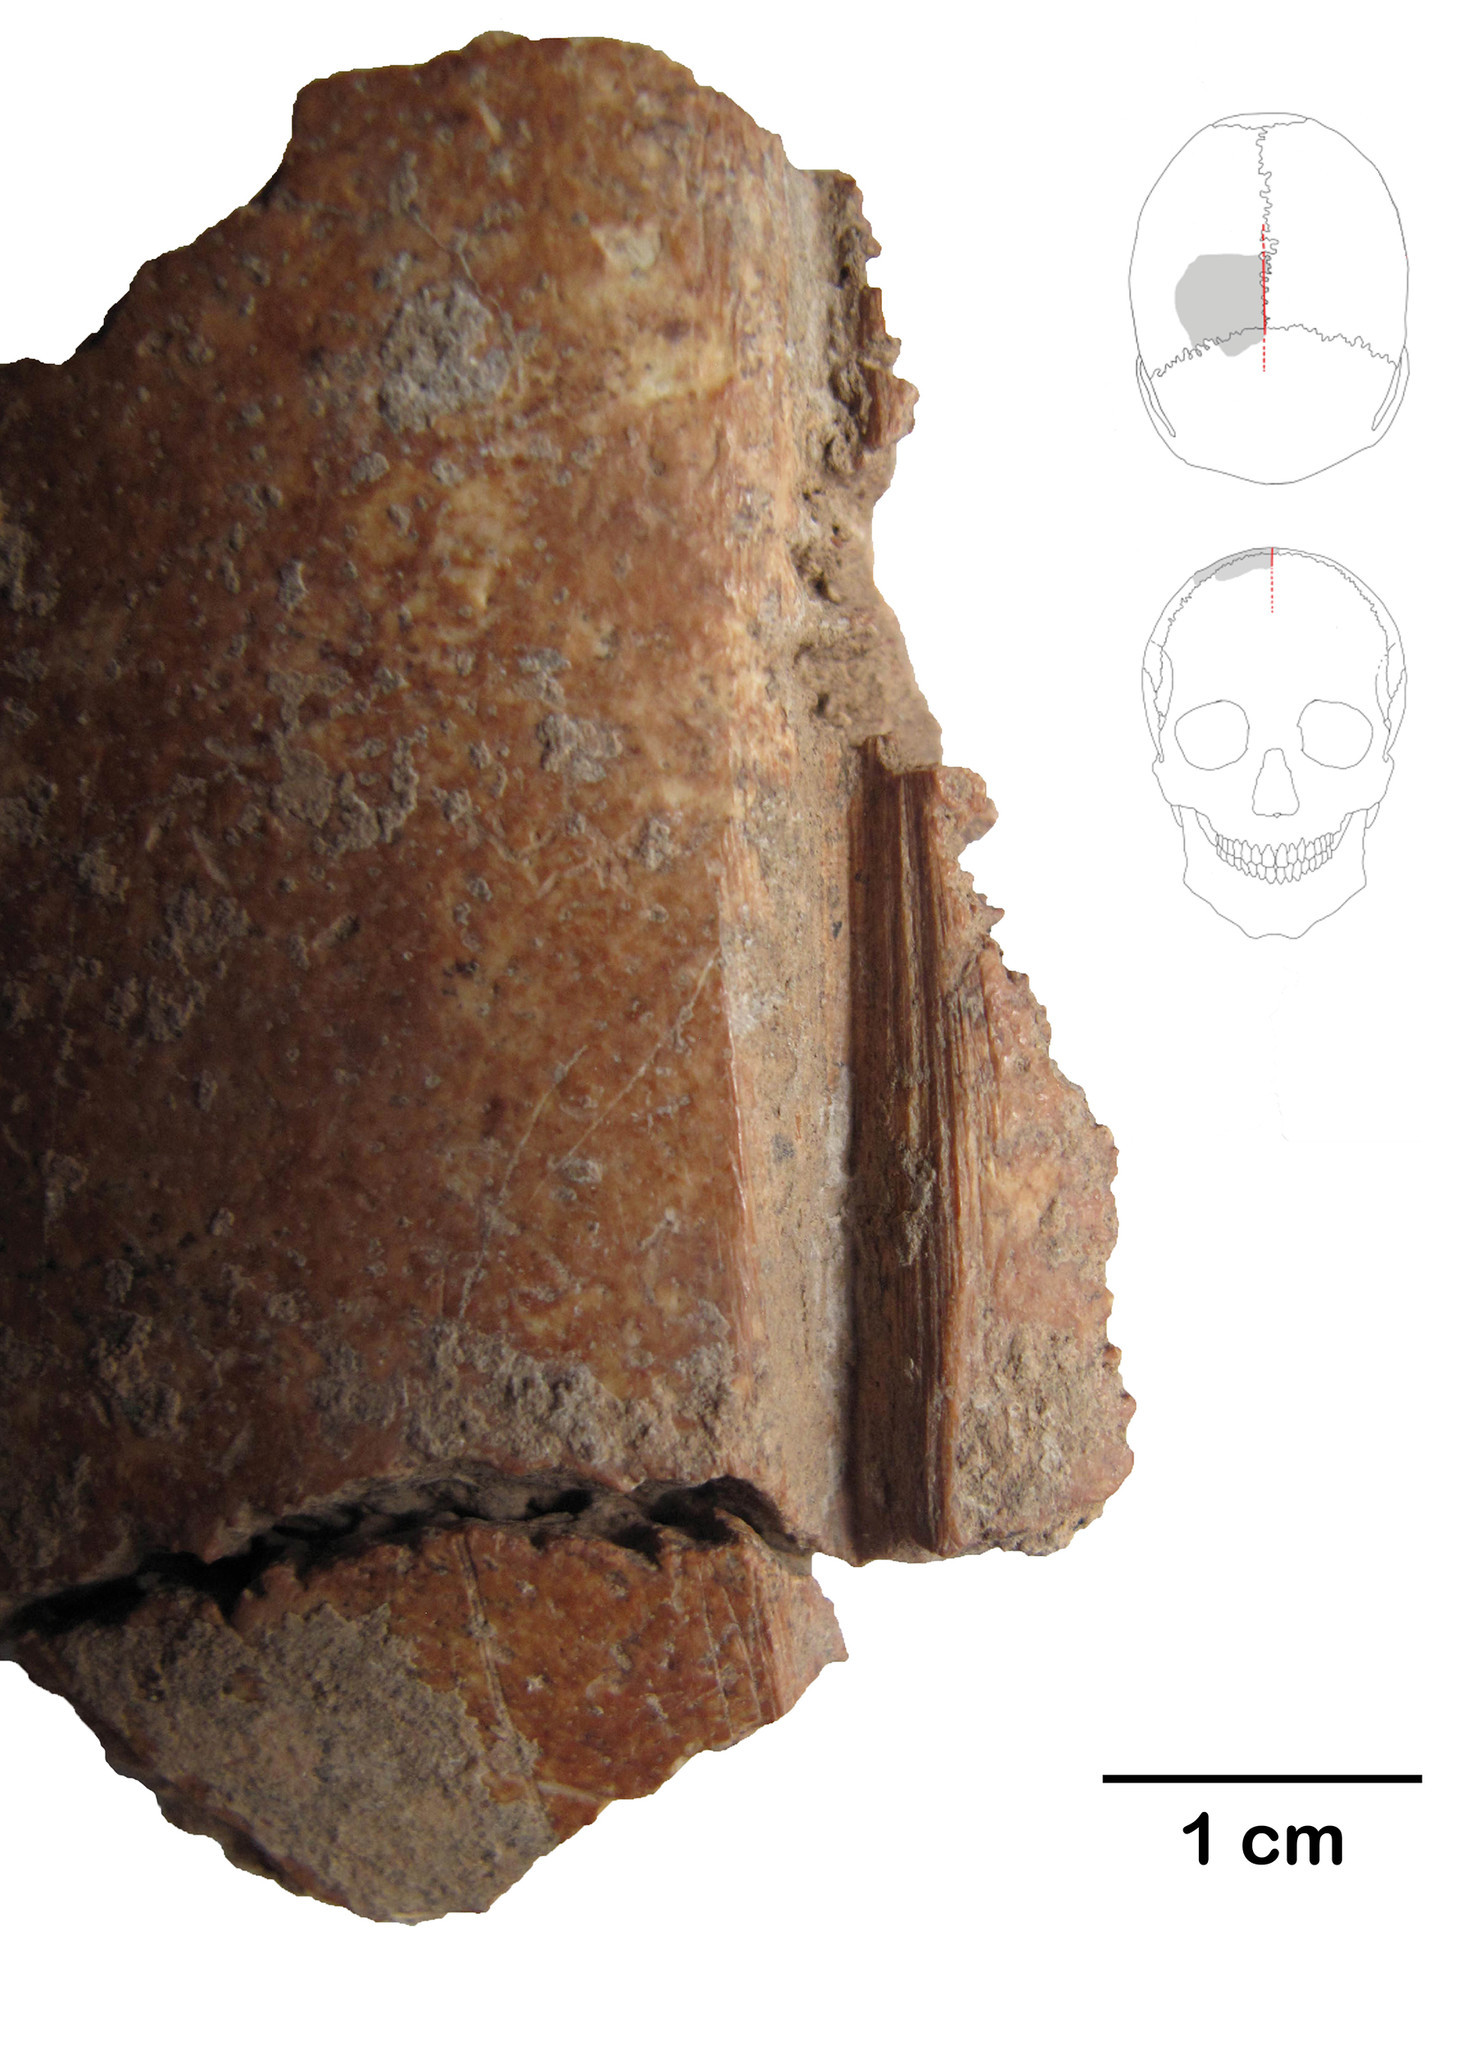 Skull fragments with cut marks.